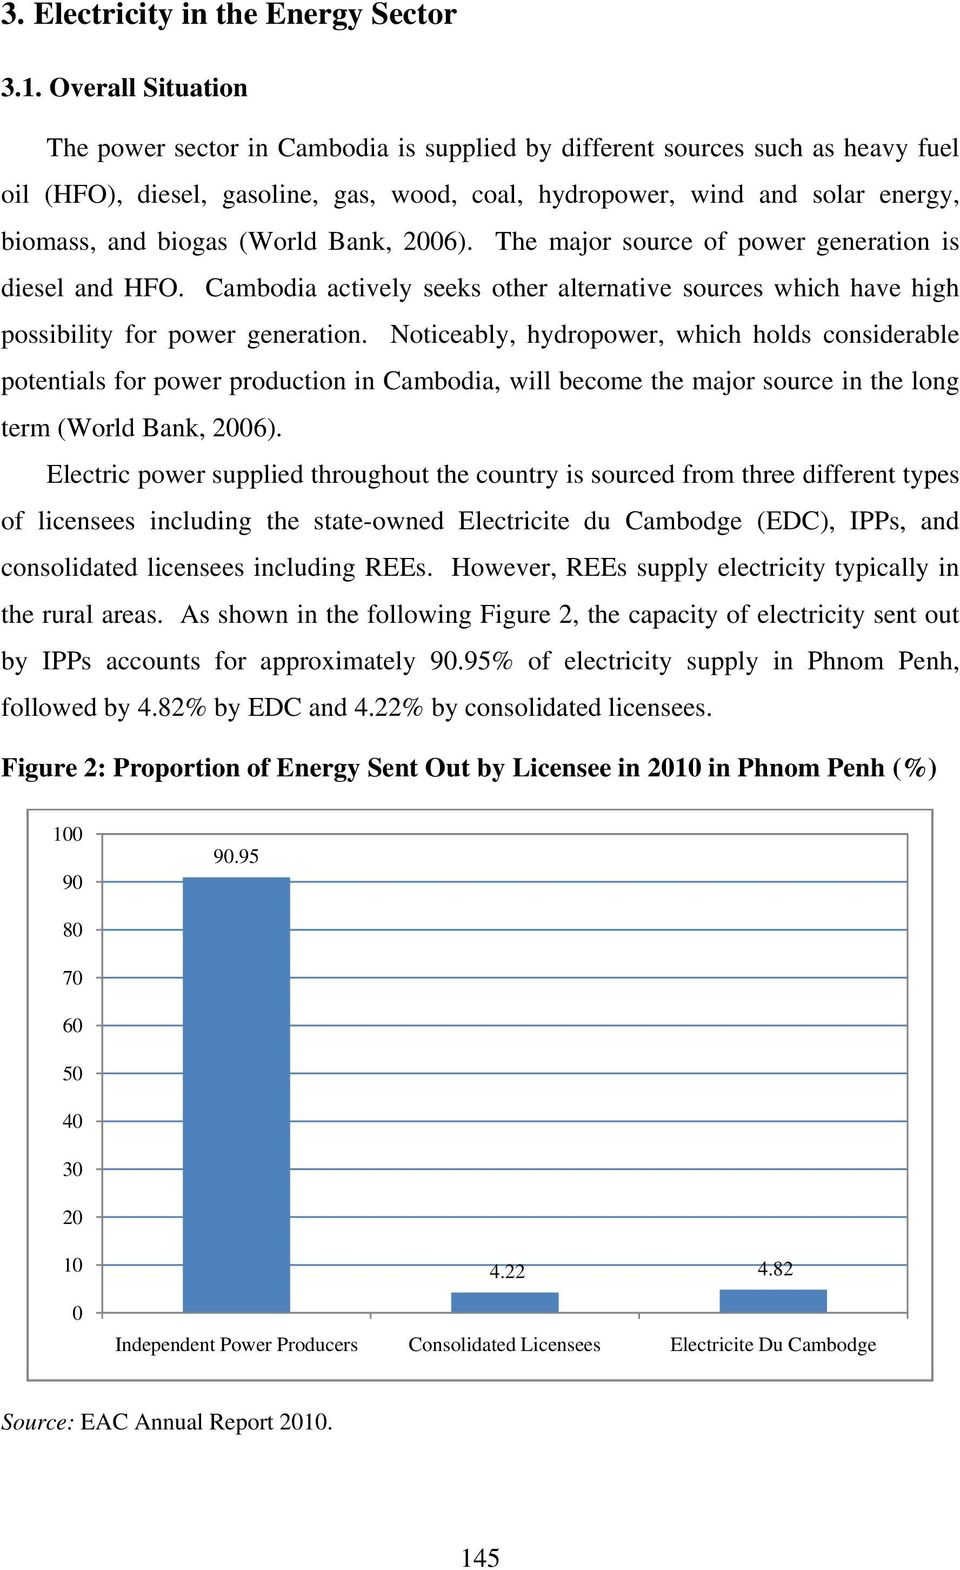 (World Bank, 2006). The major source of power generation is diesel and HFO. Cambodia actively seeks other alternative sources which have high possibility for power generation.